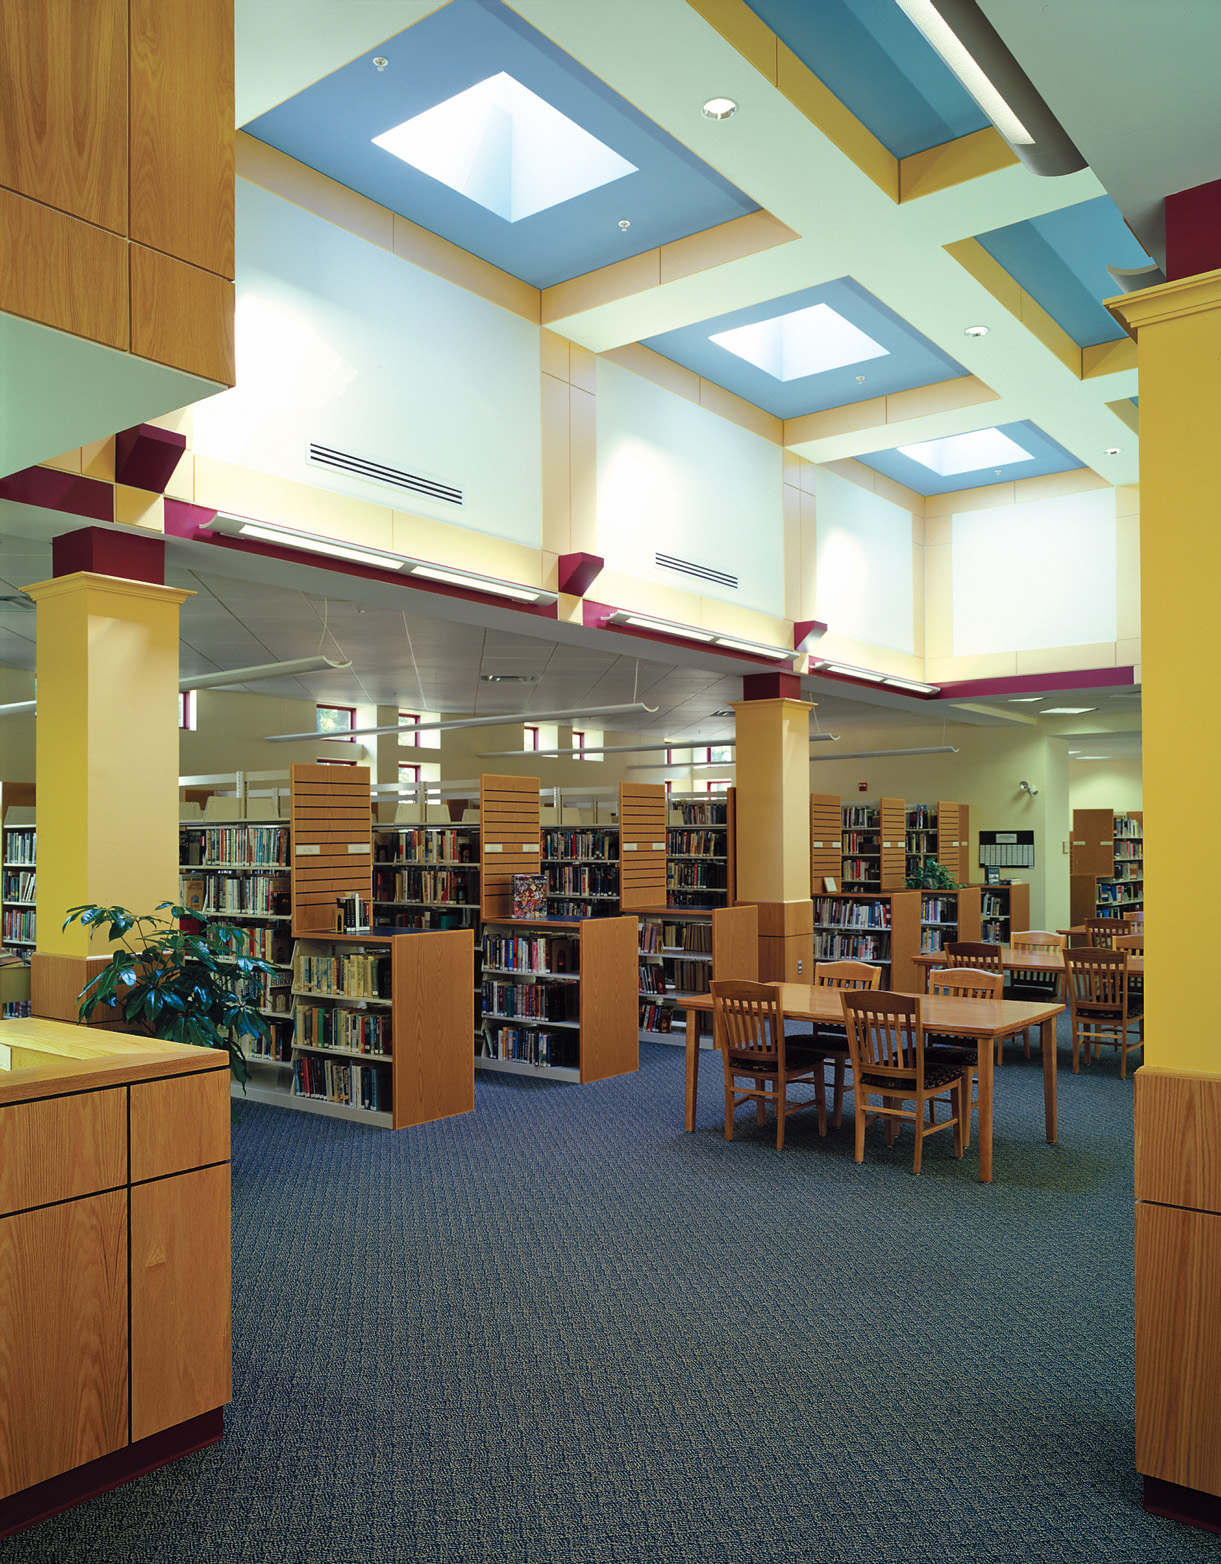 Natural light floods the reading room through tall windows and skylights.